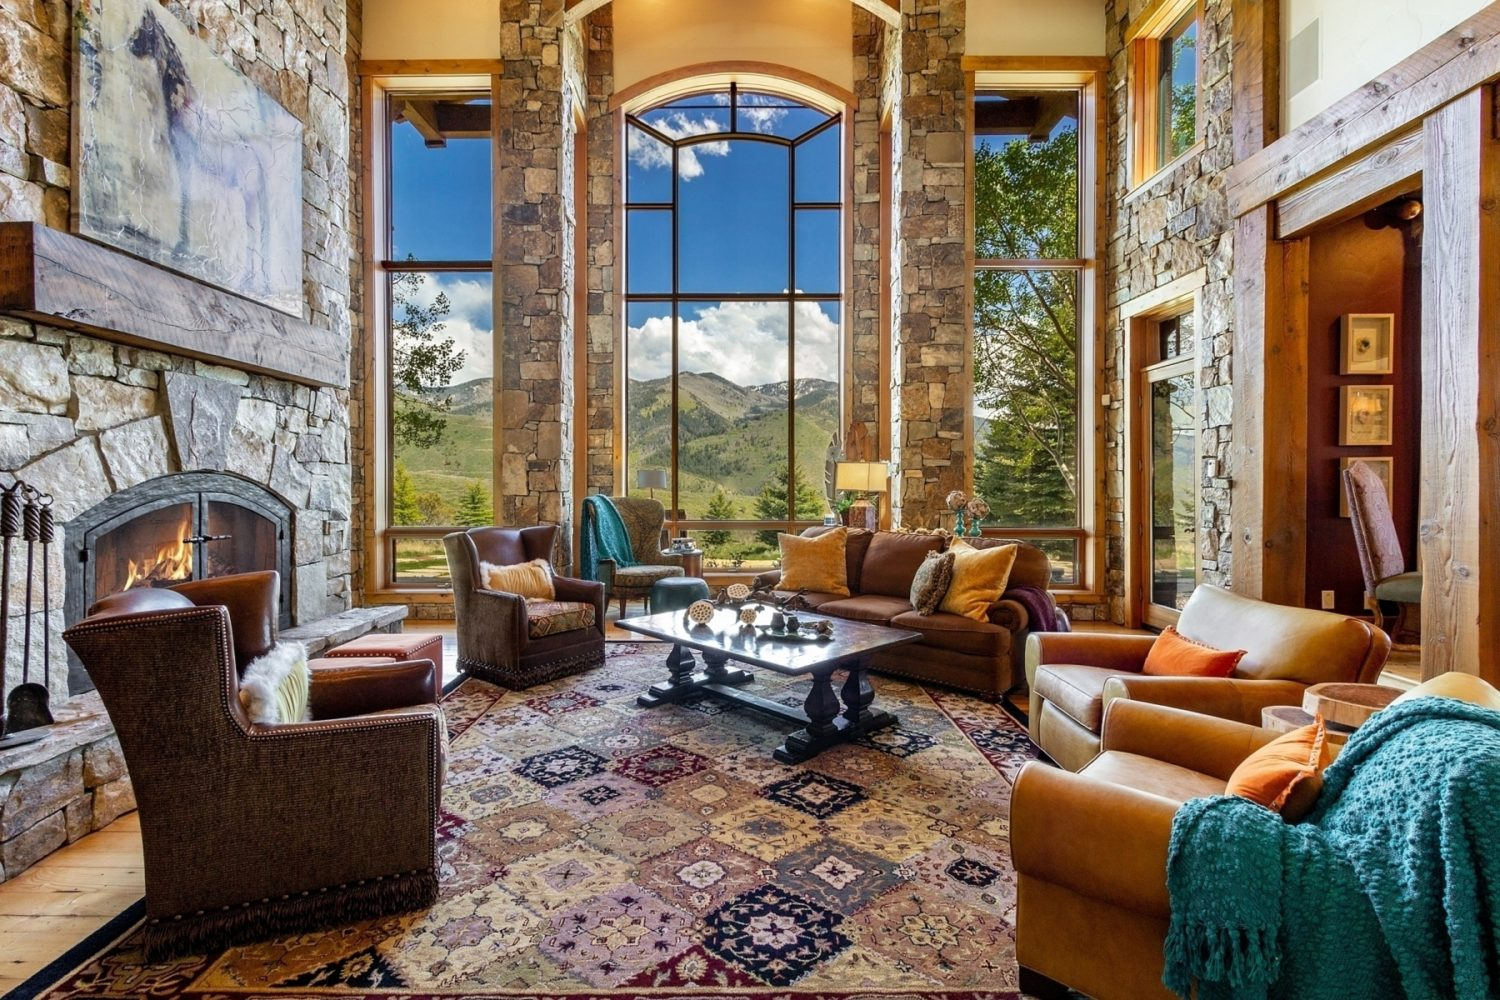 Mountain Home with architectural elements. Furniture placement highlights the focal points